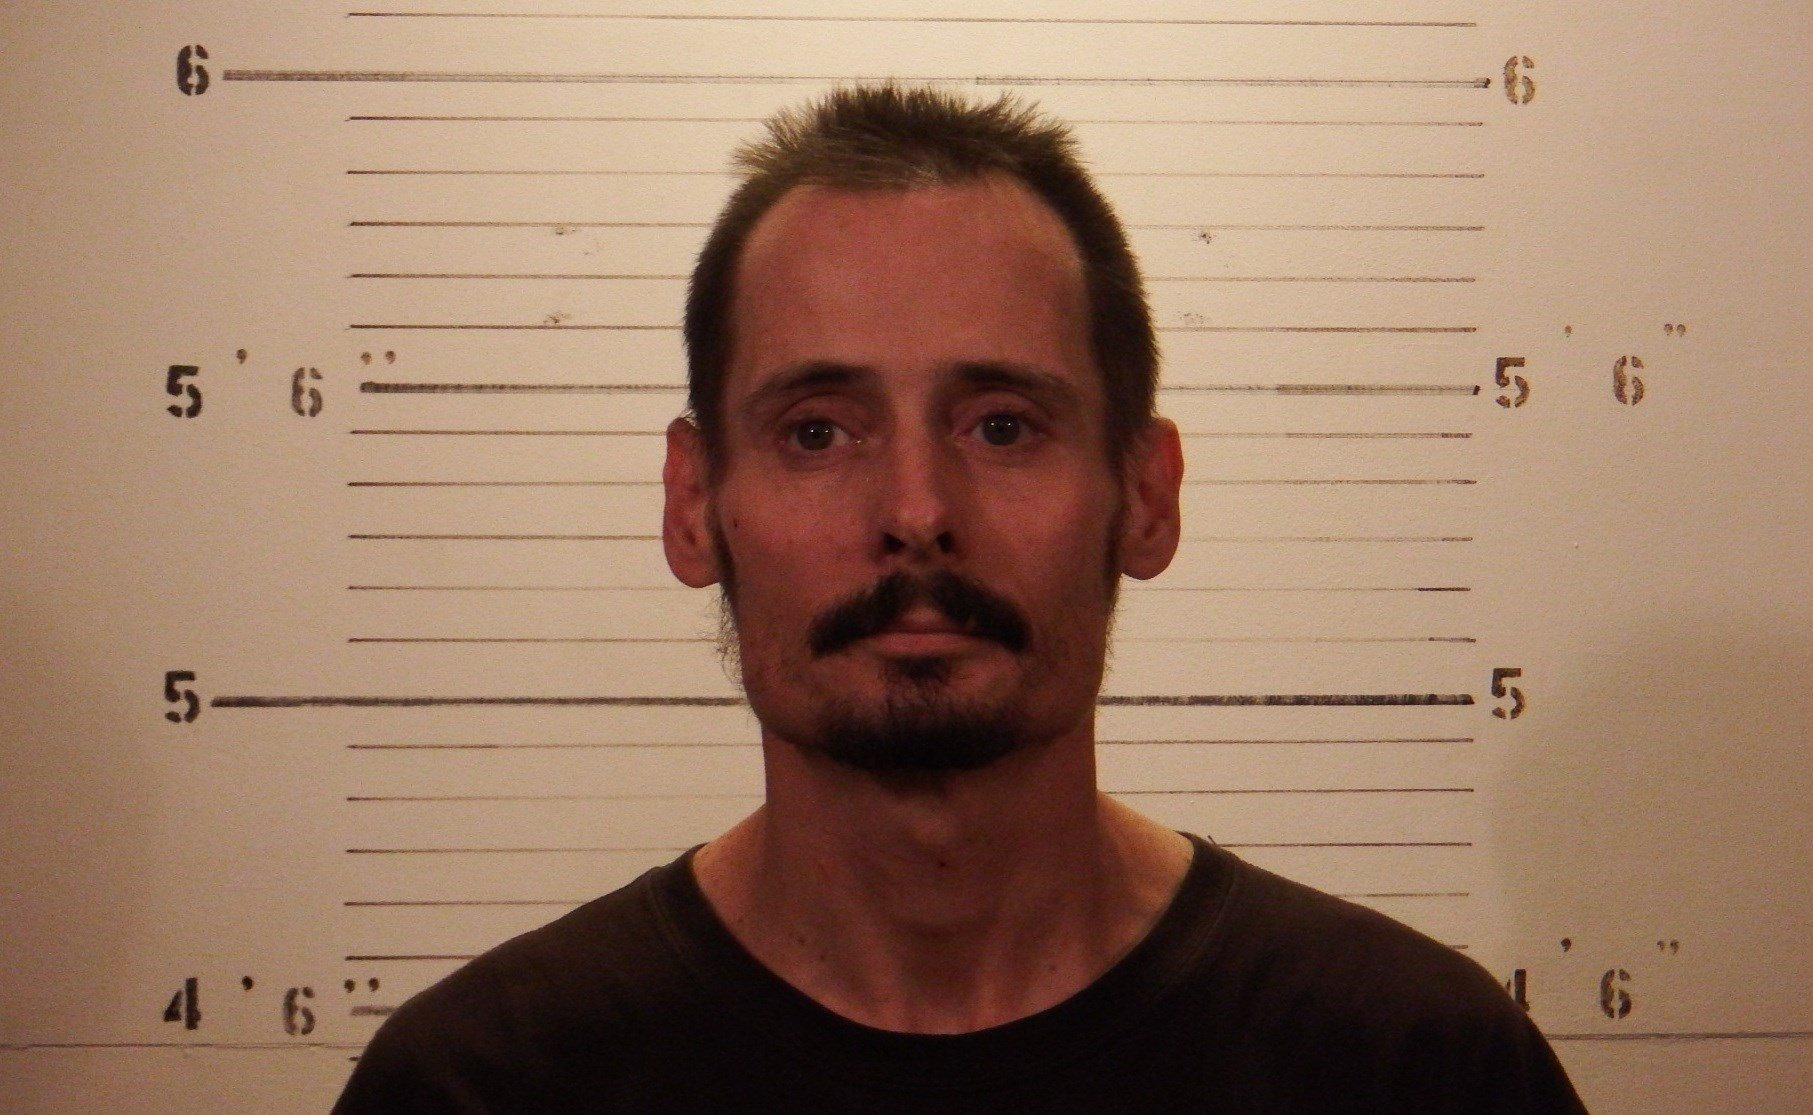 Jeremy Jordan, 43, is charged with unlawful procurement of meth precursors.